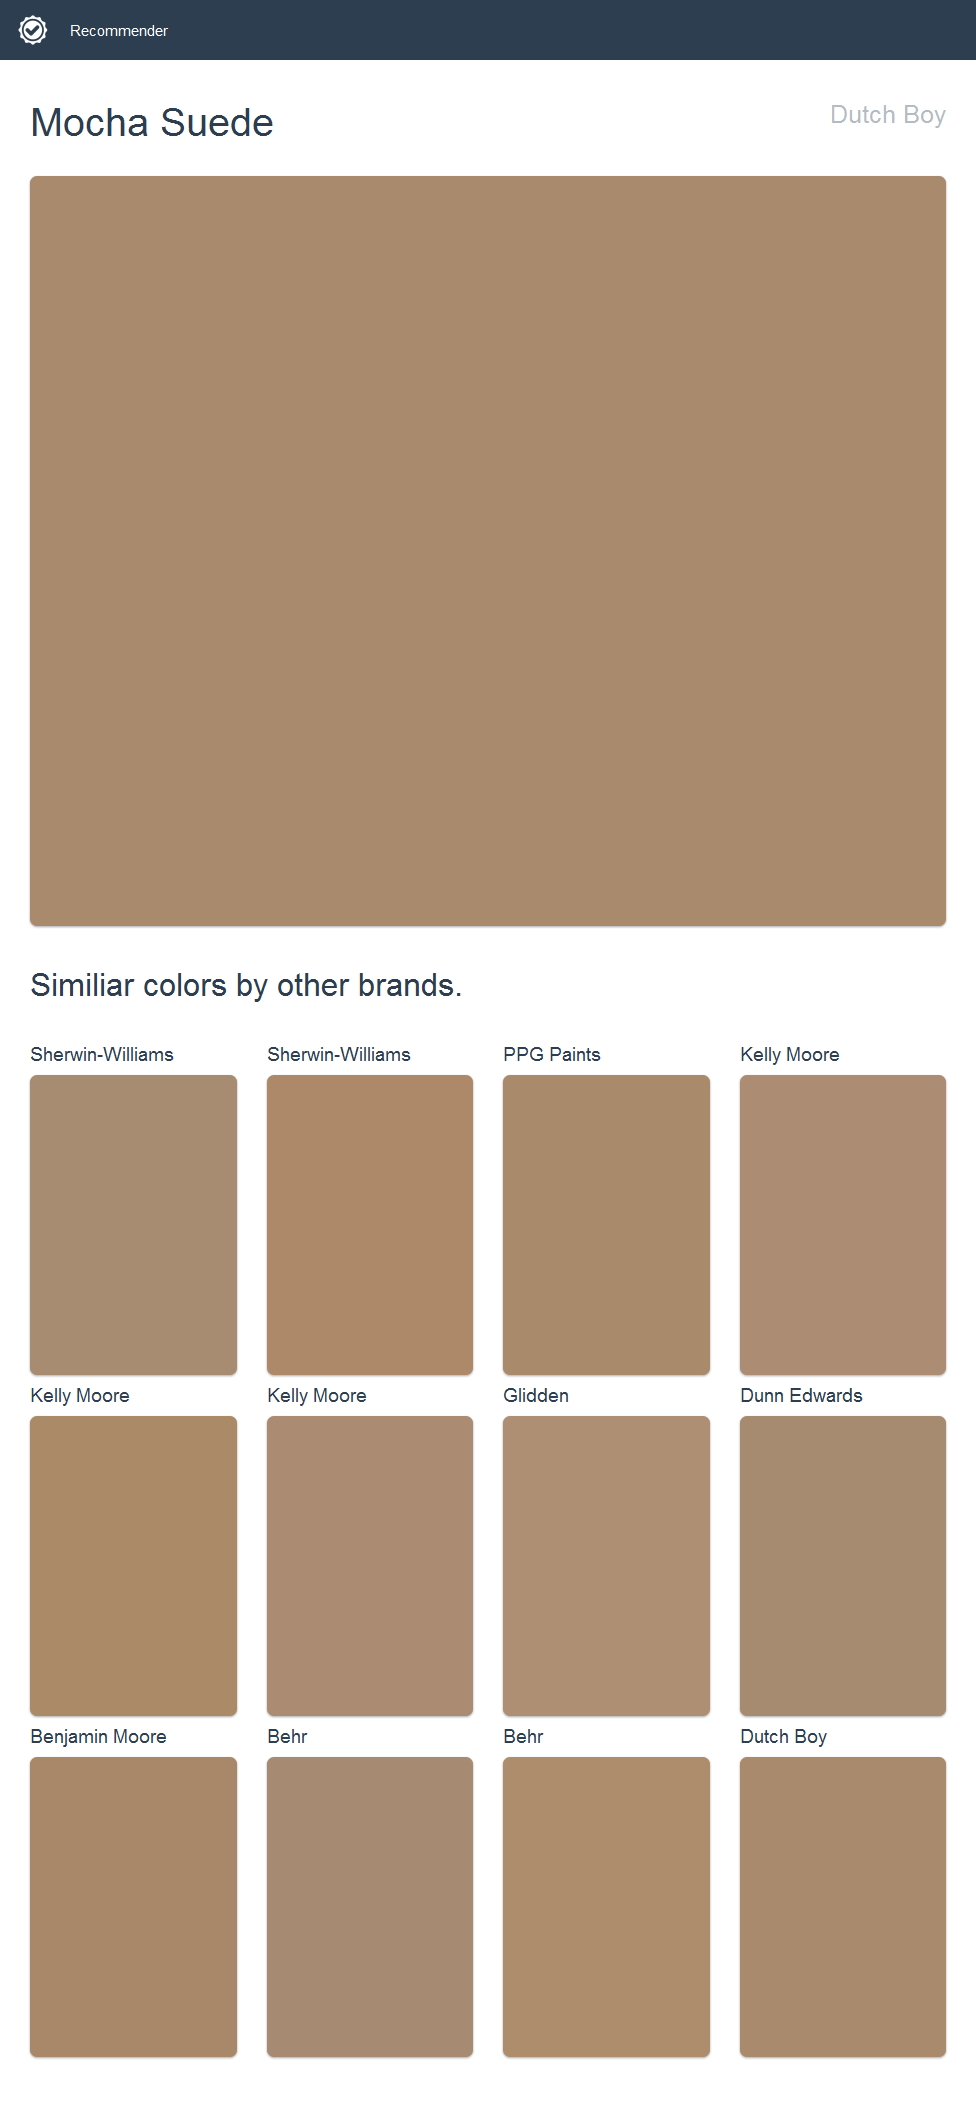 Mocha Paint Colors mocha suede, dutch boy. | 2017 - dutch boy paint | pinterest